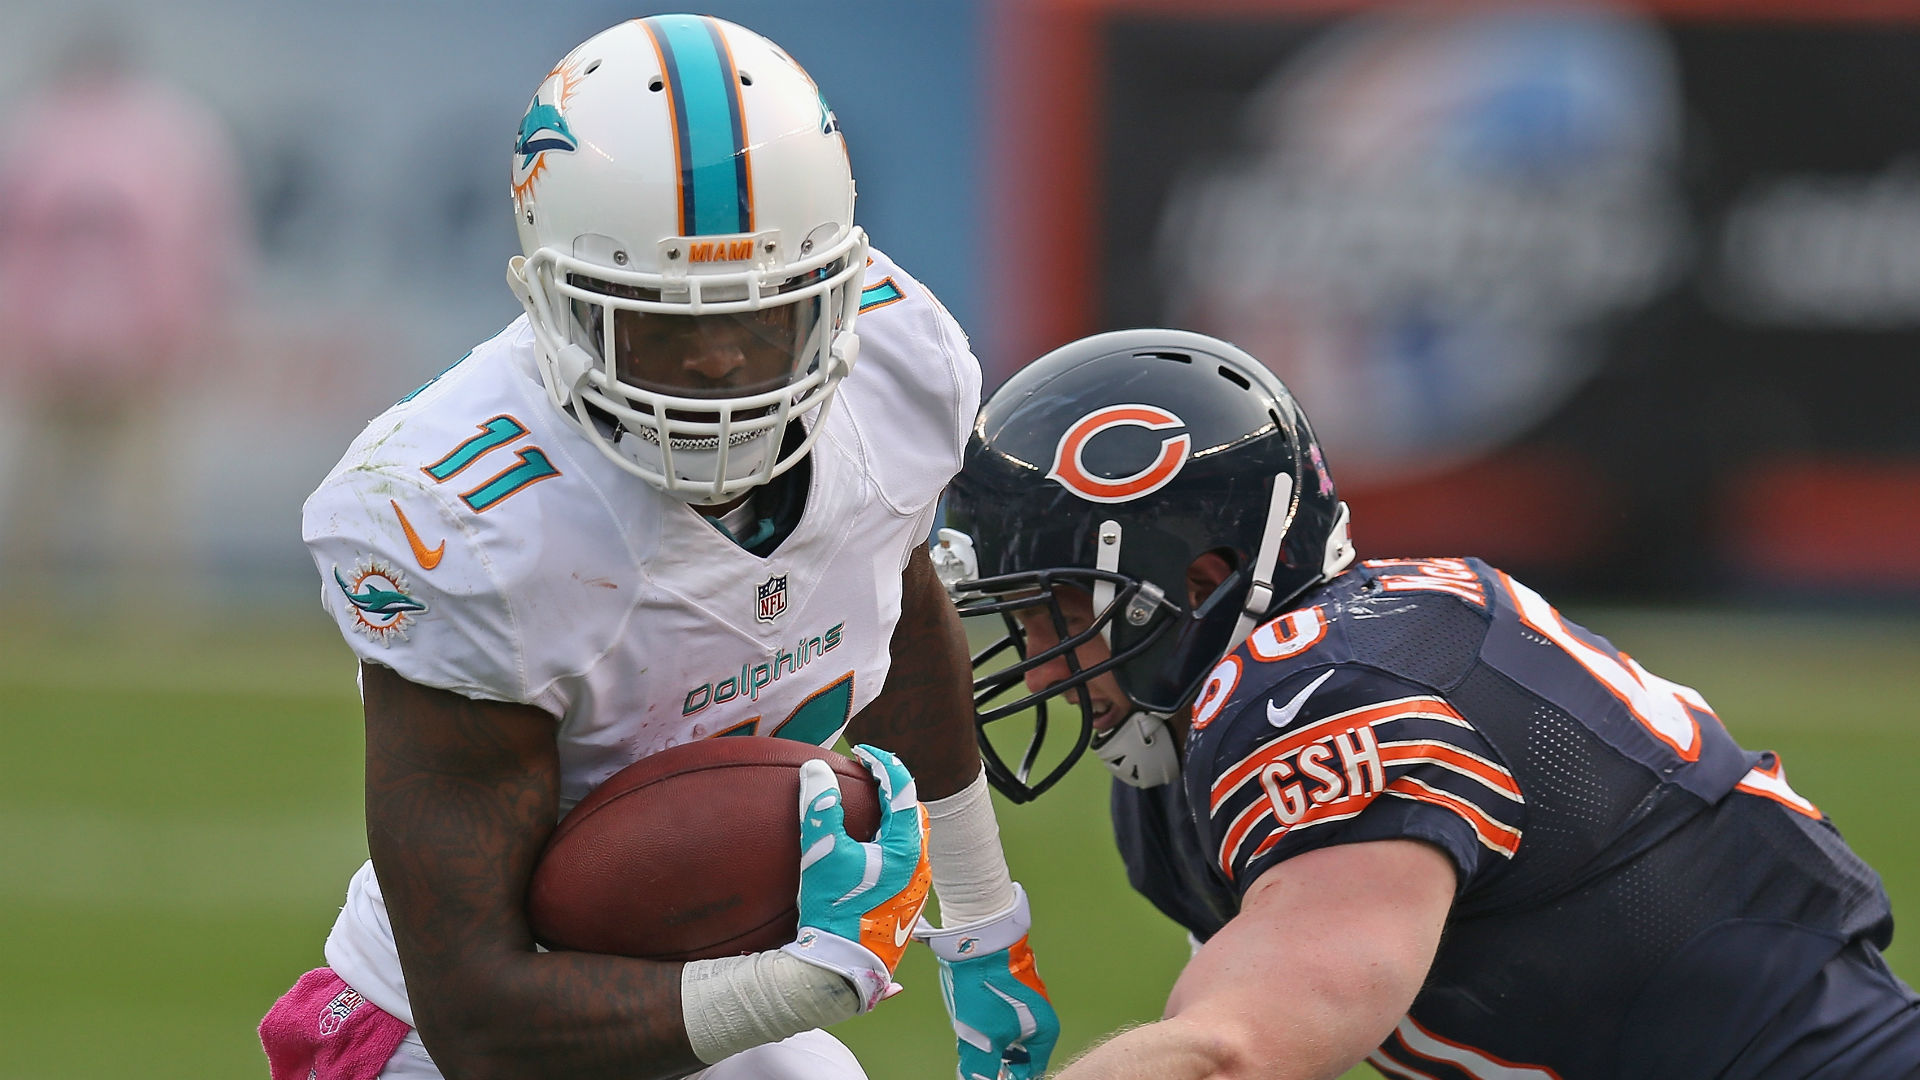 Dolphins receiver Mike Wallace